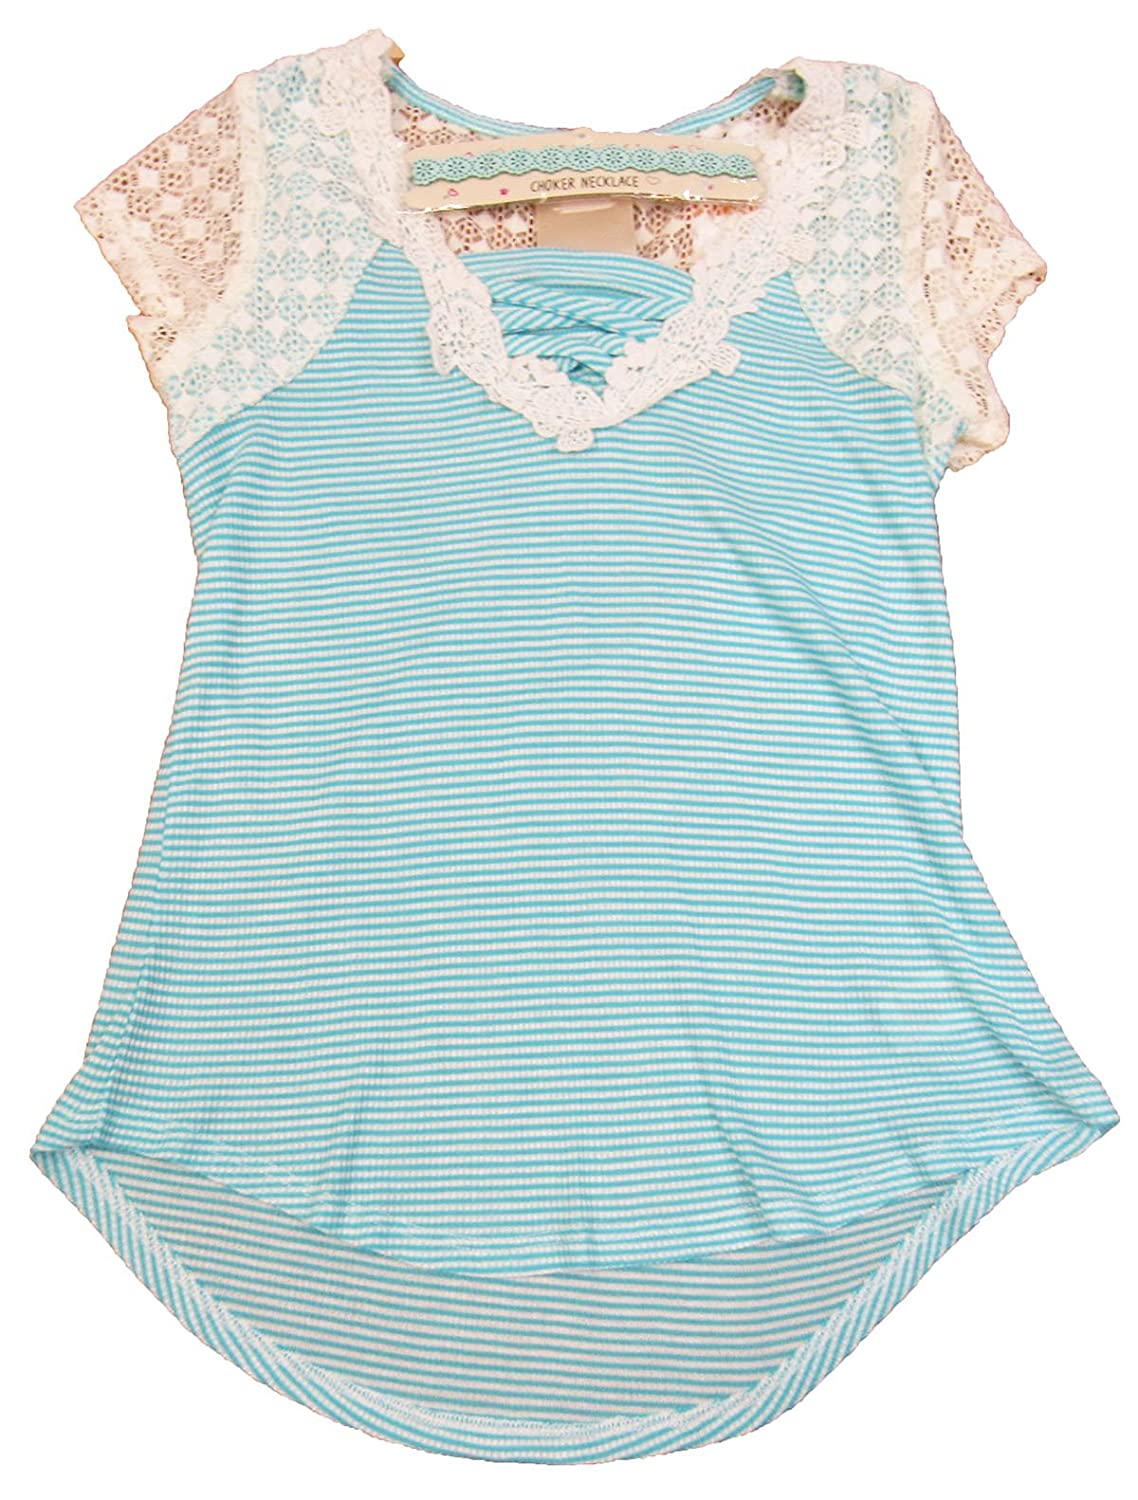 Lace-Front Shirt Green//Ivory Small Belle du Jour Big Girls 7-16